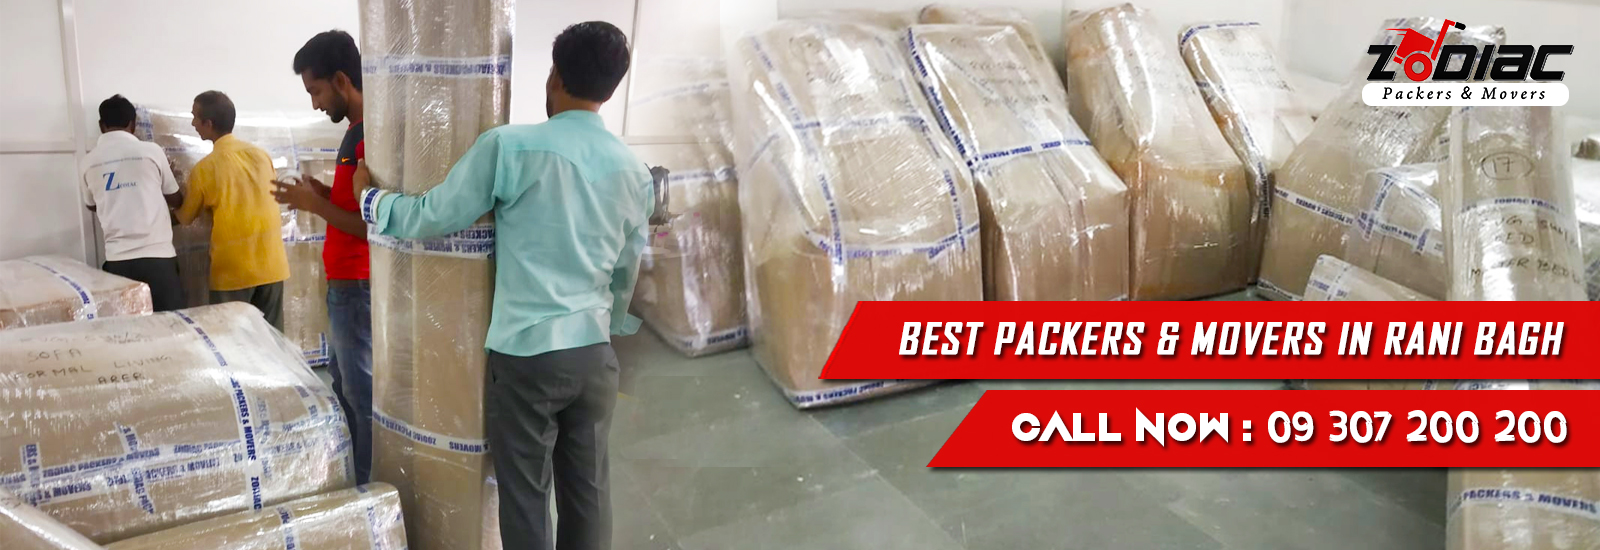 Packers and Movers in Rani Bagh